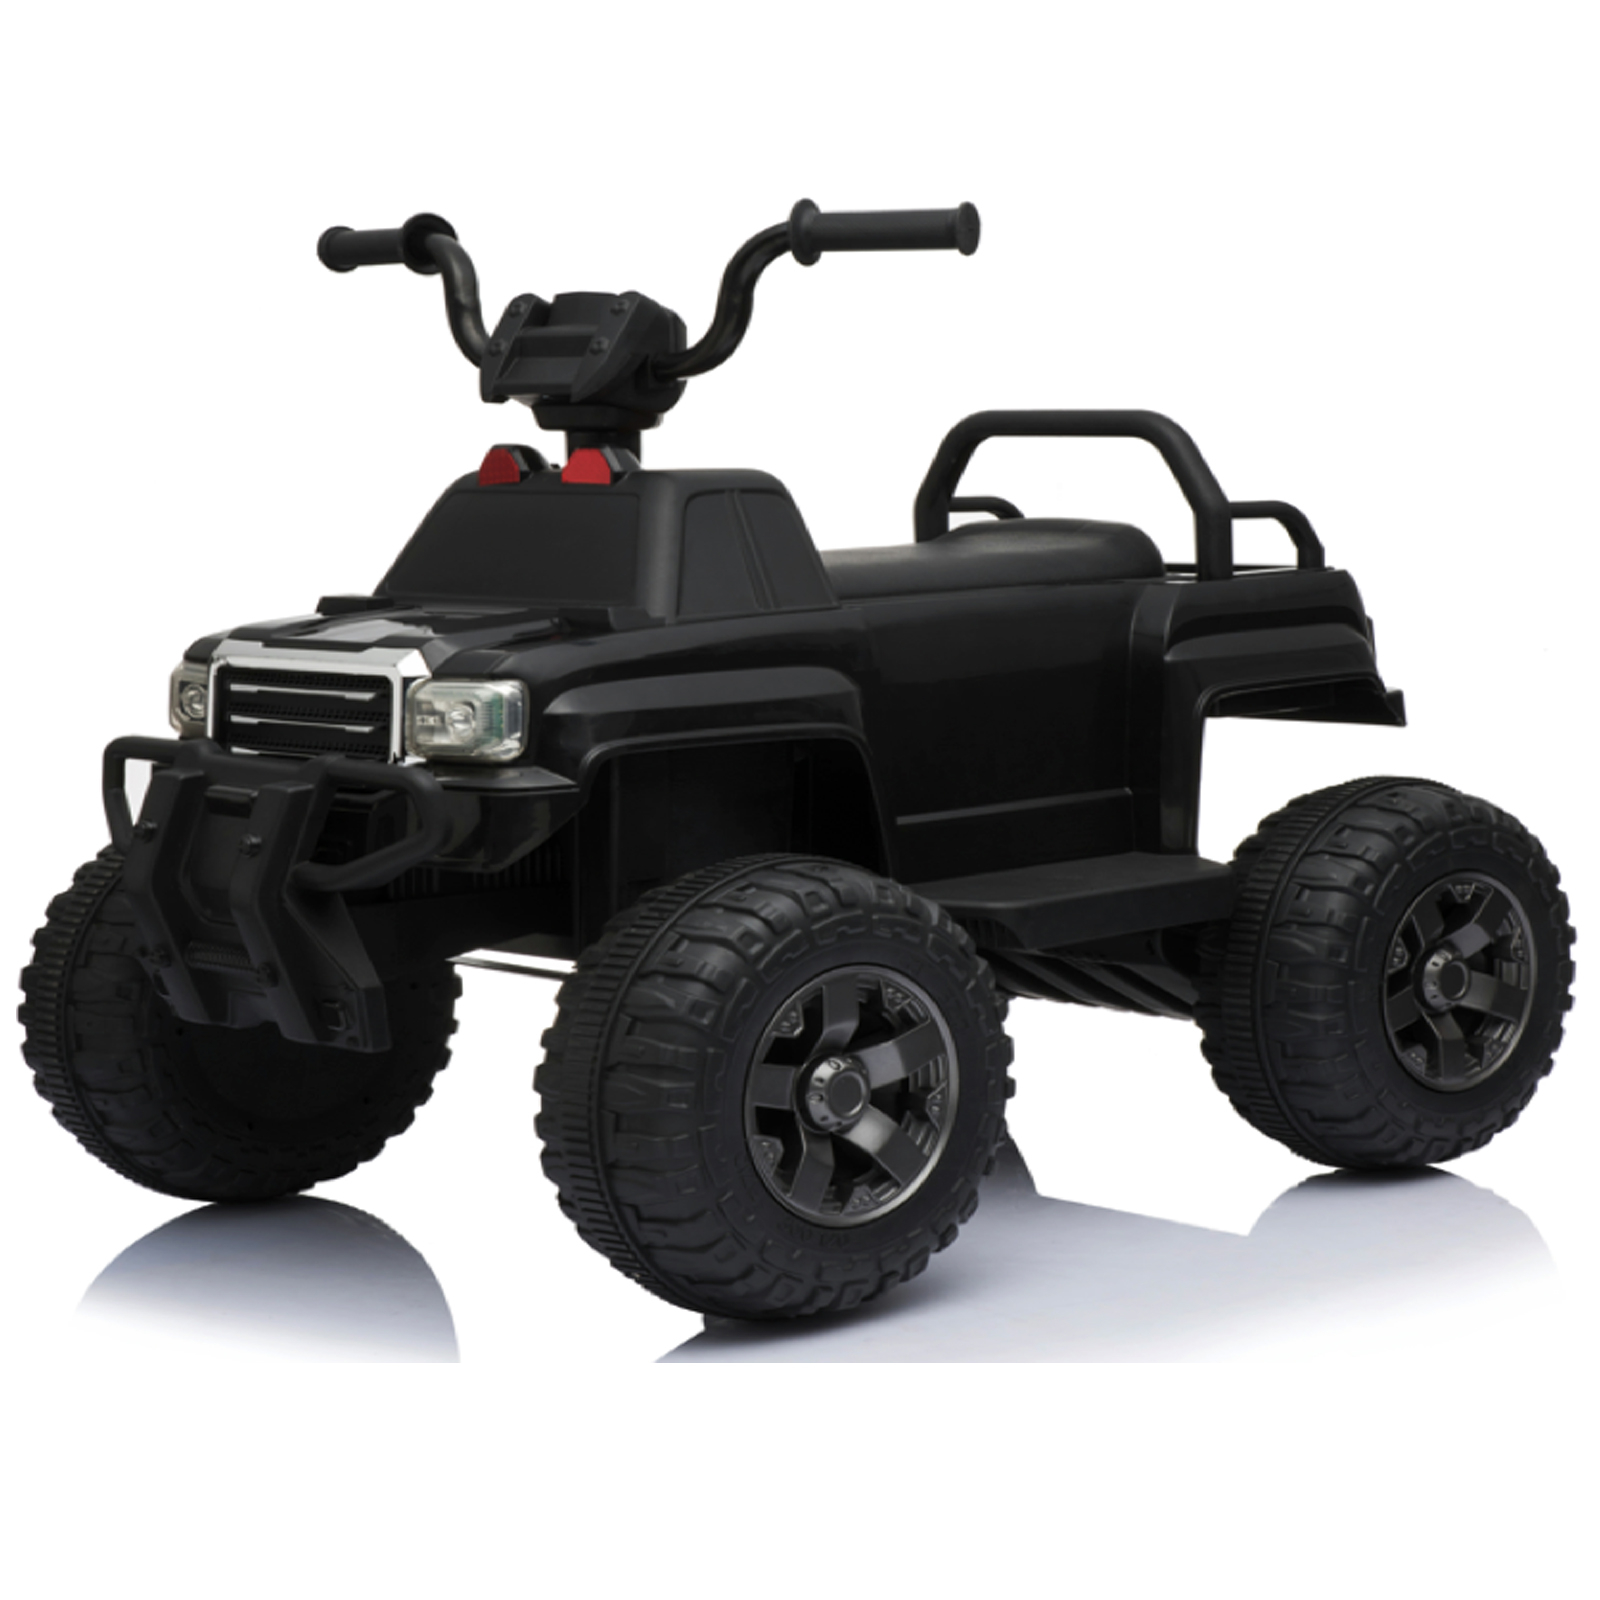 KidPlay Products Kids Ride On Car Utility Quad 12V Battery Powered Rider - Black